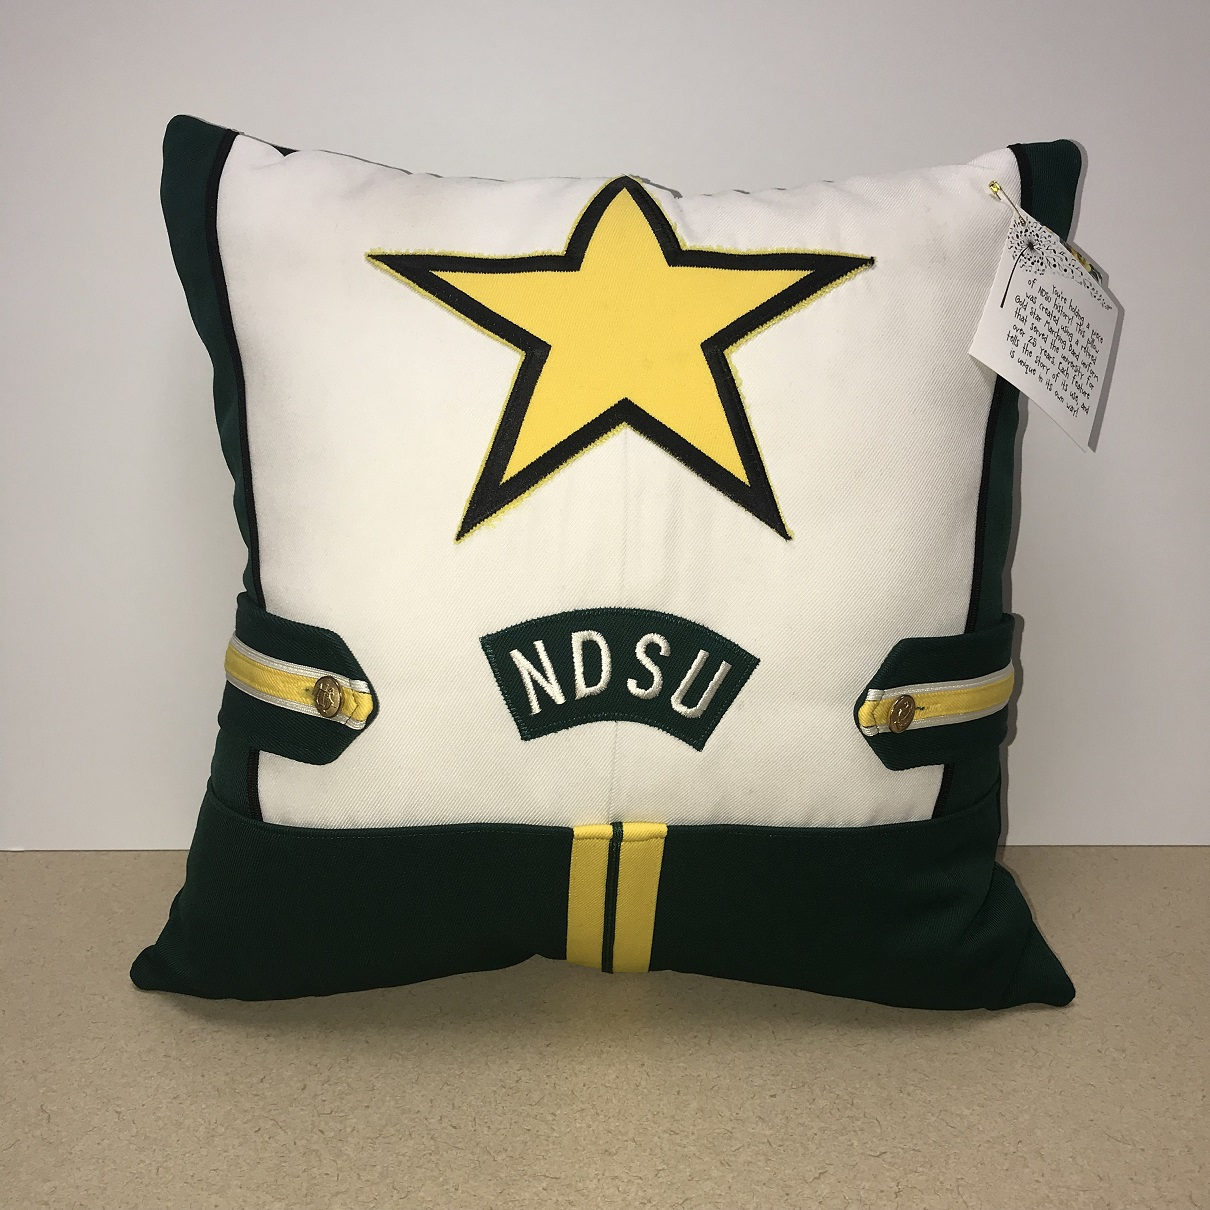 GSMB Pillow Large - by Taea Made